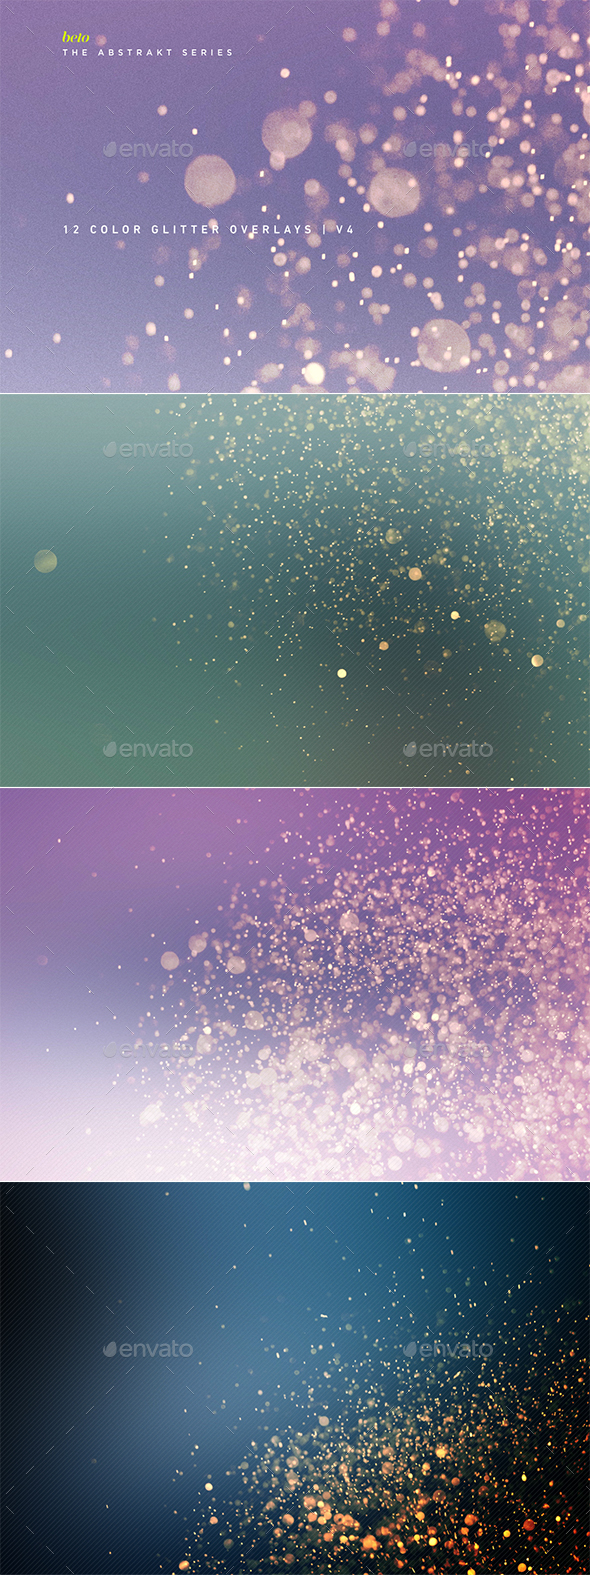 Color Glitter Overlays V4 - Abstract Backgrounds